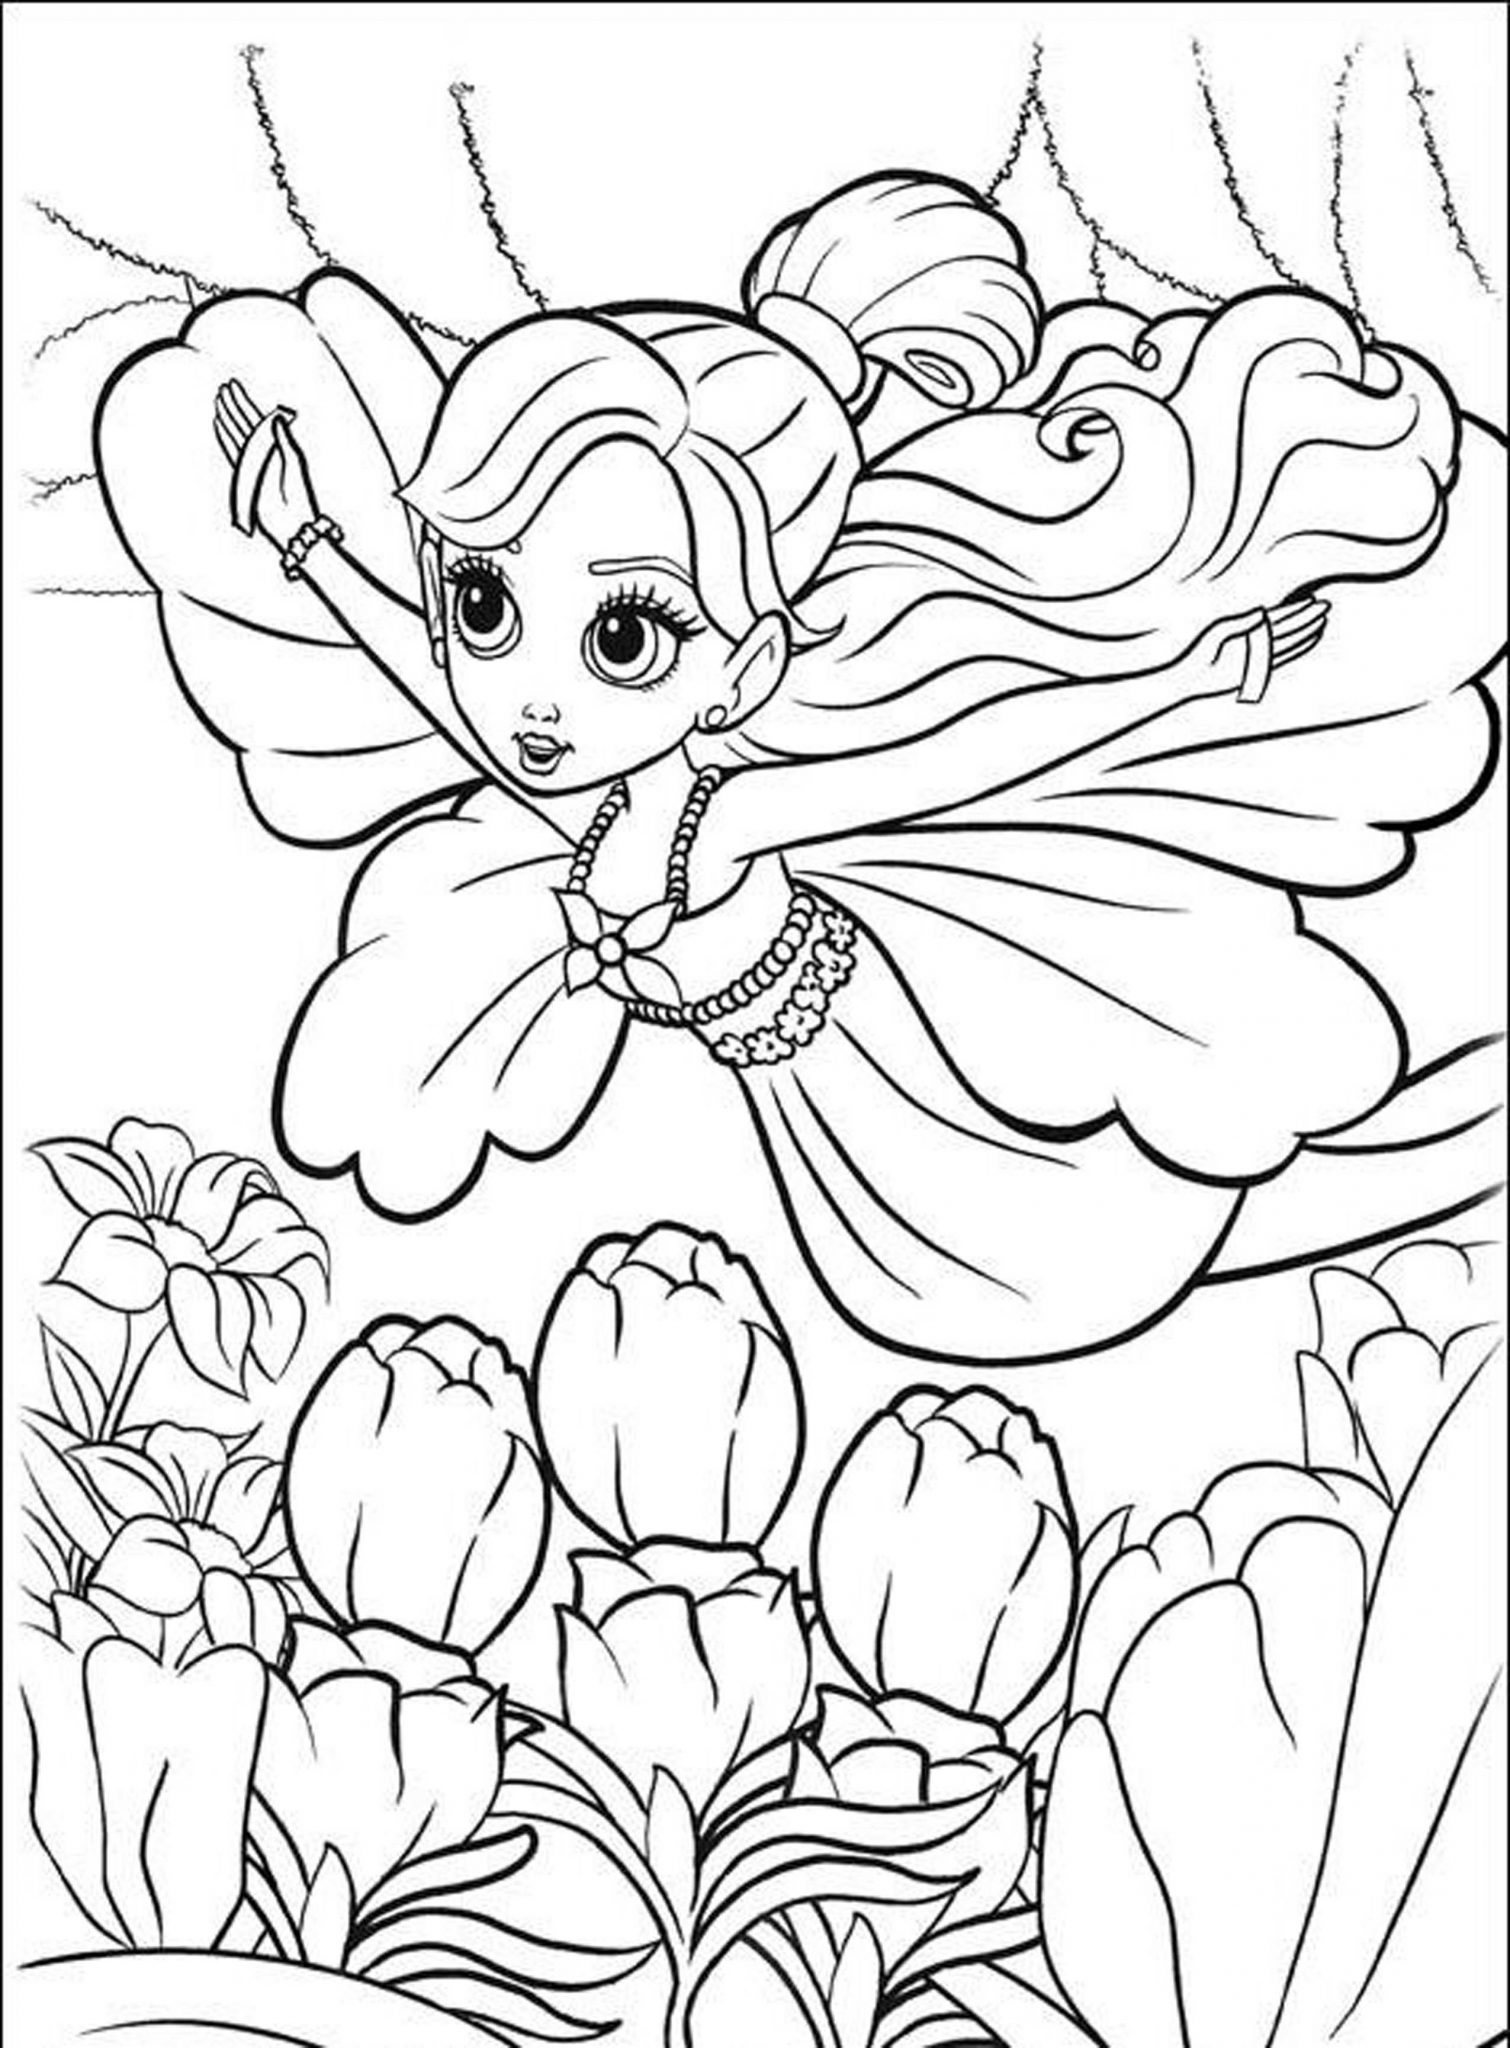 coloring pages girls adult coloring page girl portrait and leaves colouring coloring pages girls